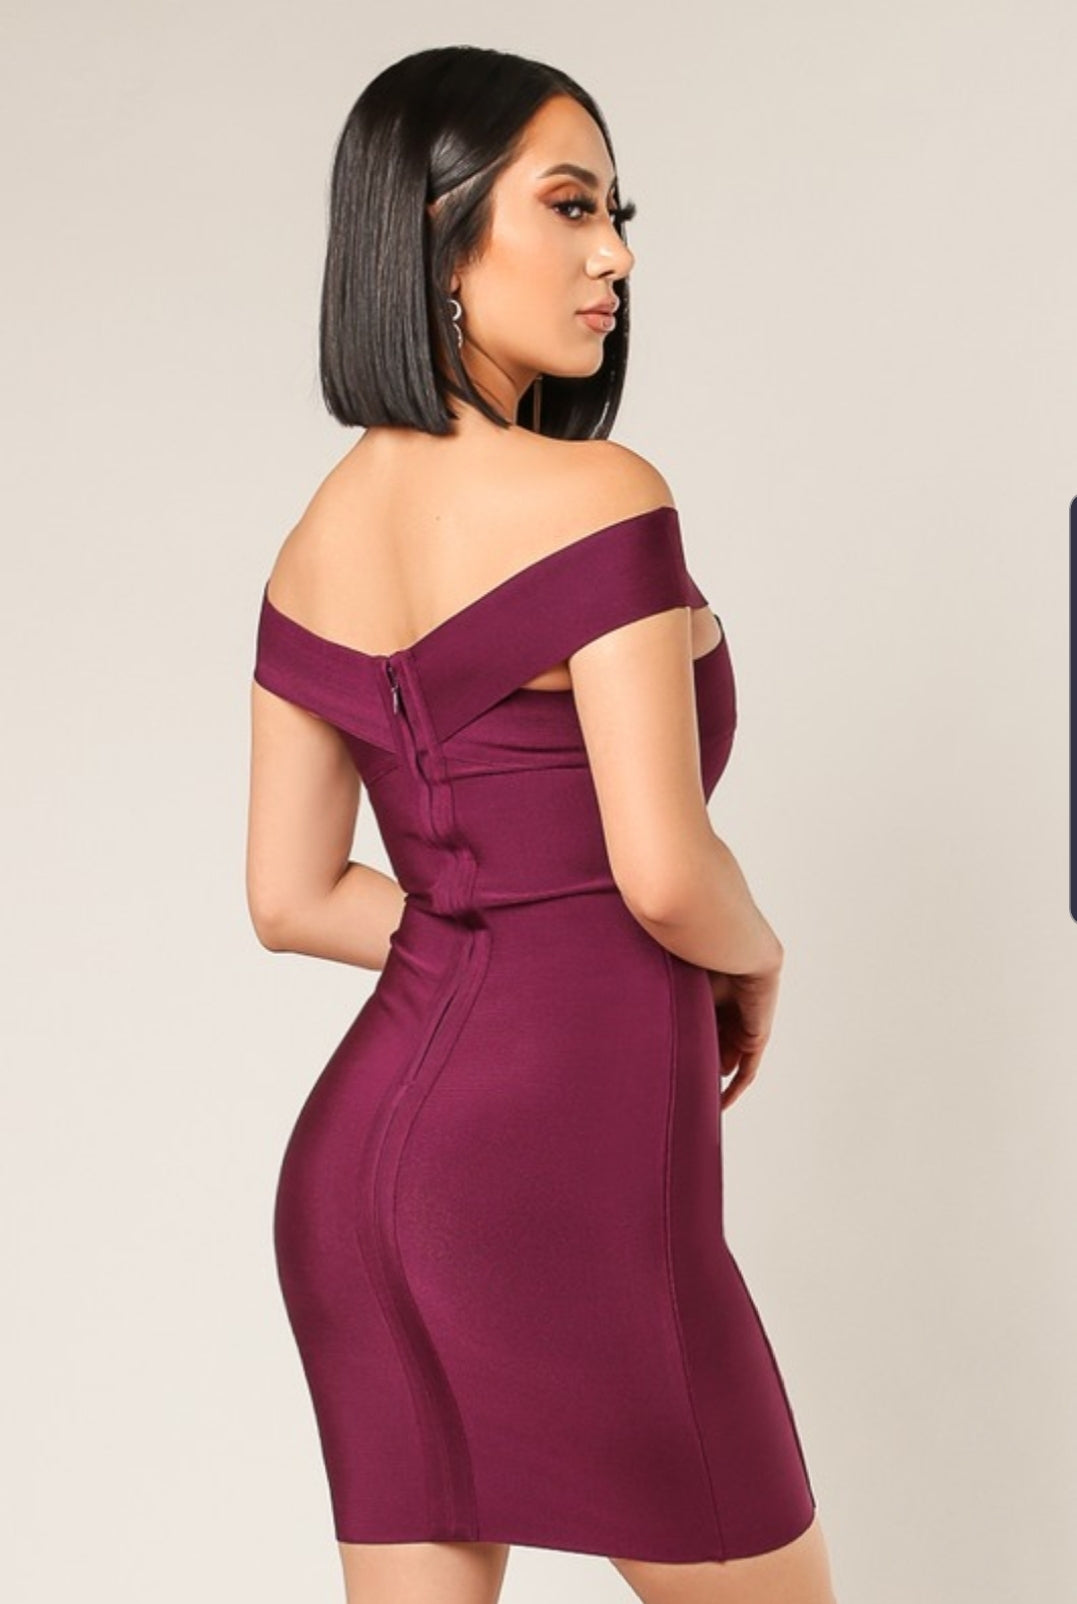 Live Passionately Bandage dress